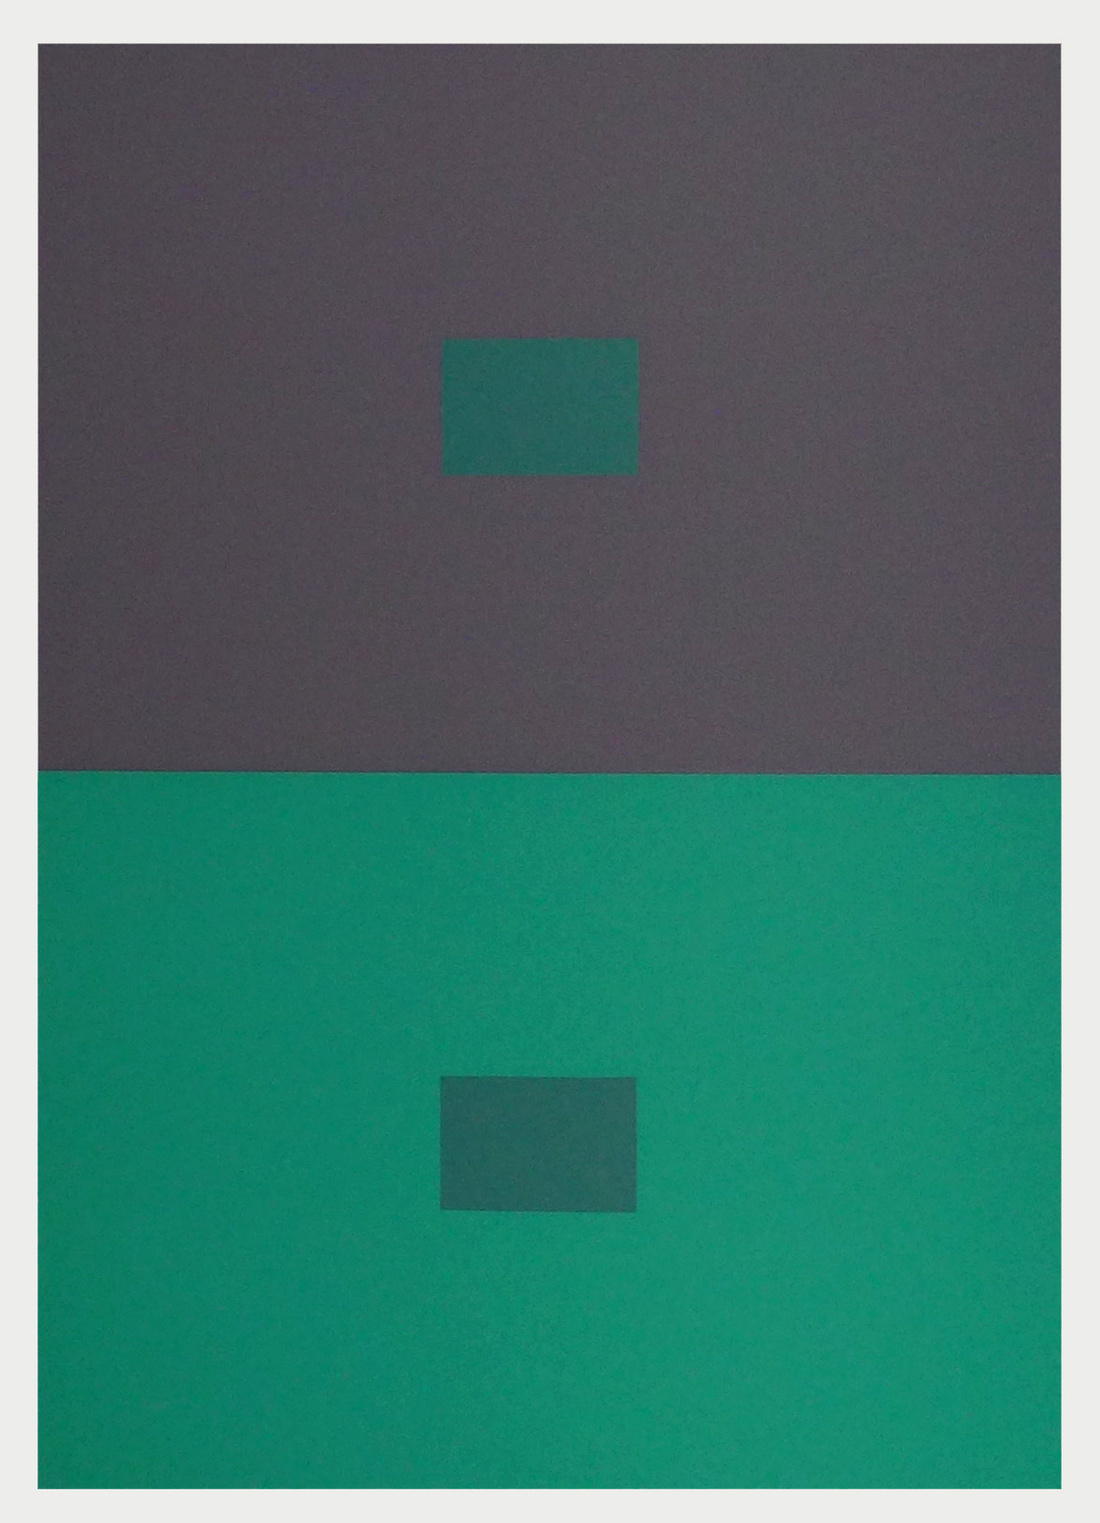 Josef Albers, Interaction of Color, 1963. Francis Frost.